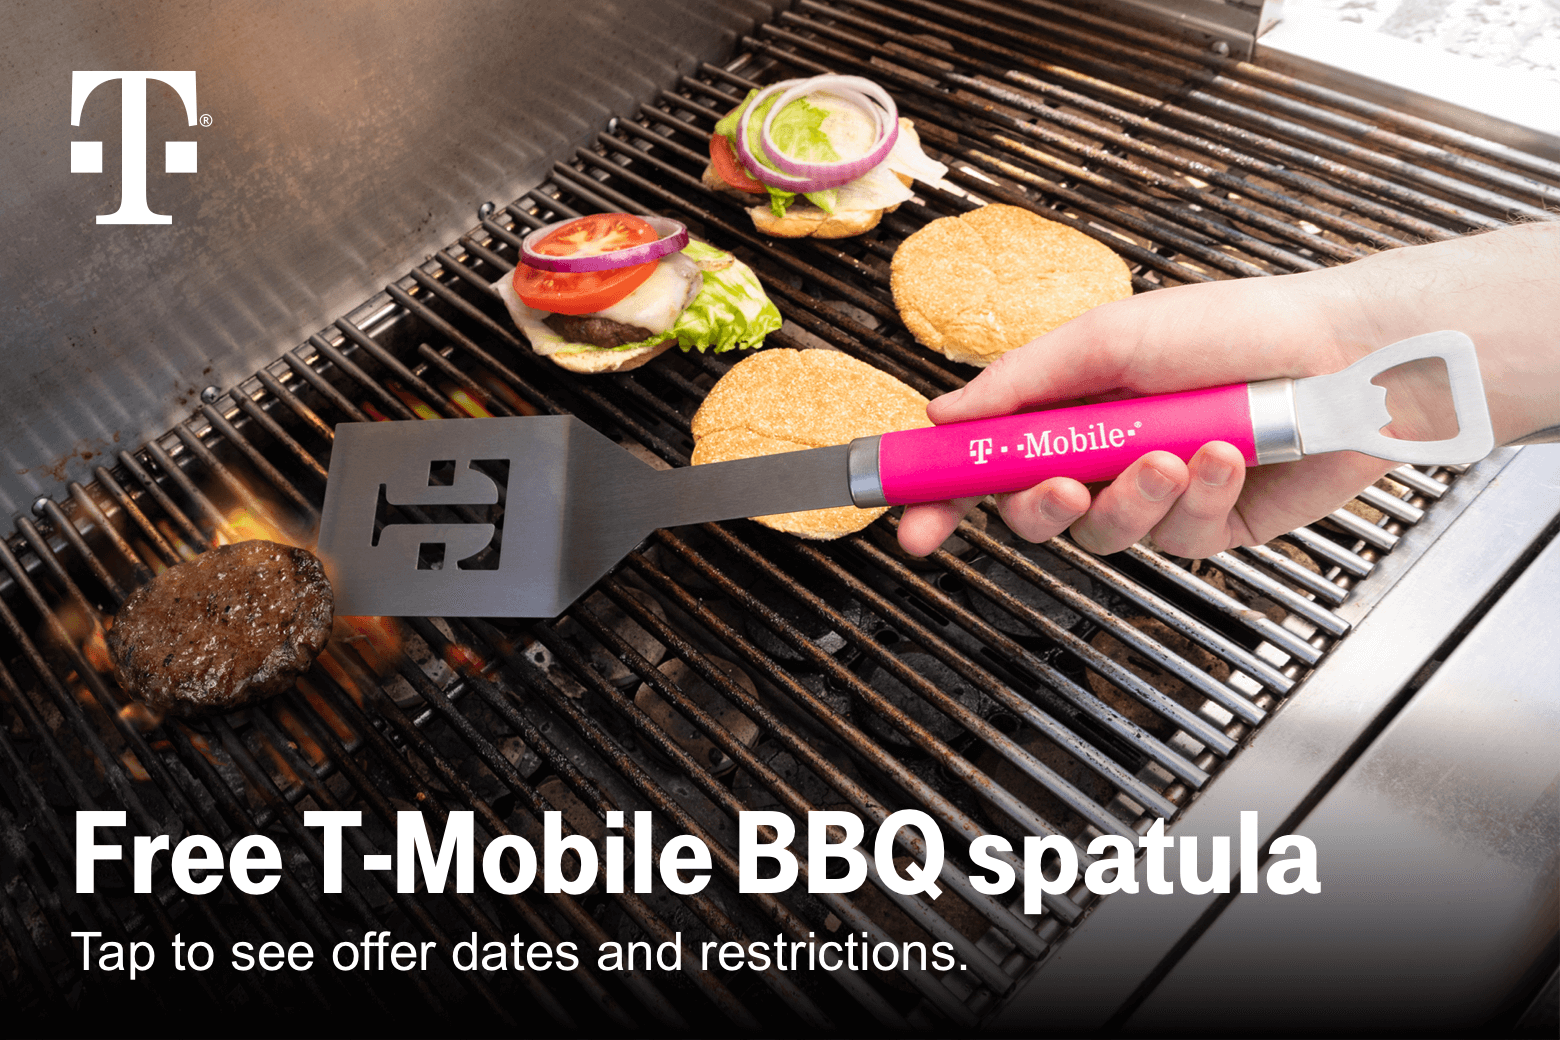 T-Mobile. Free T-Mobile BBQ Spatula. Tap to see offer dates and restrictions.